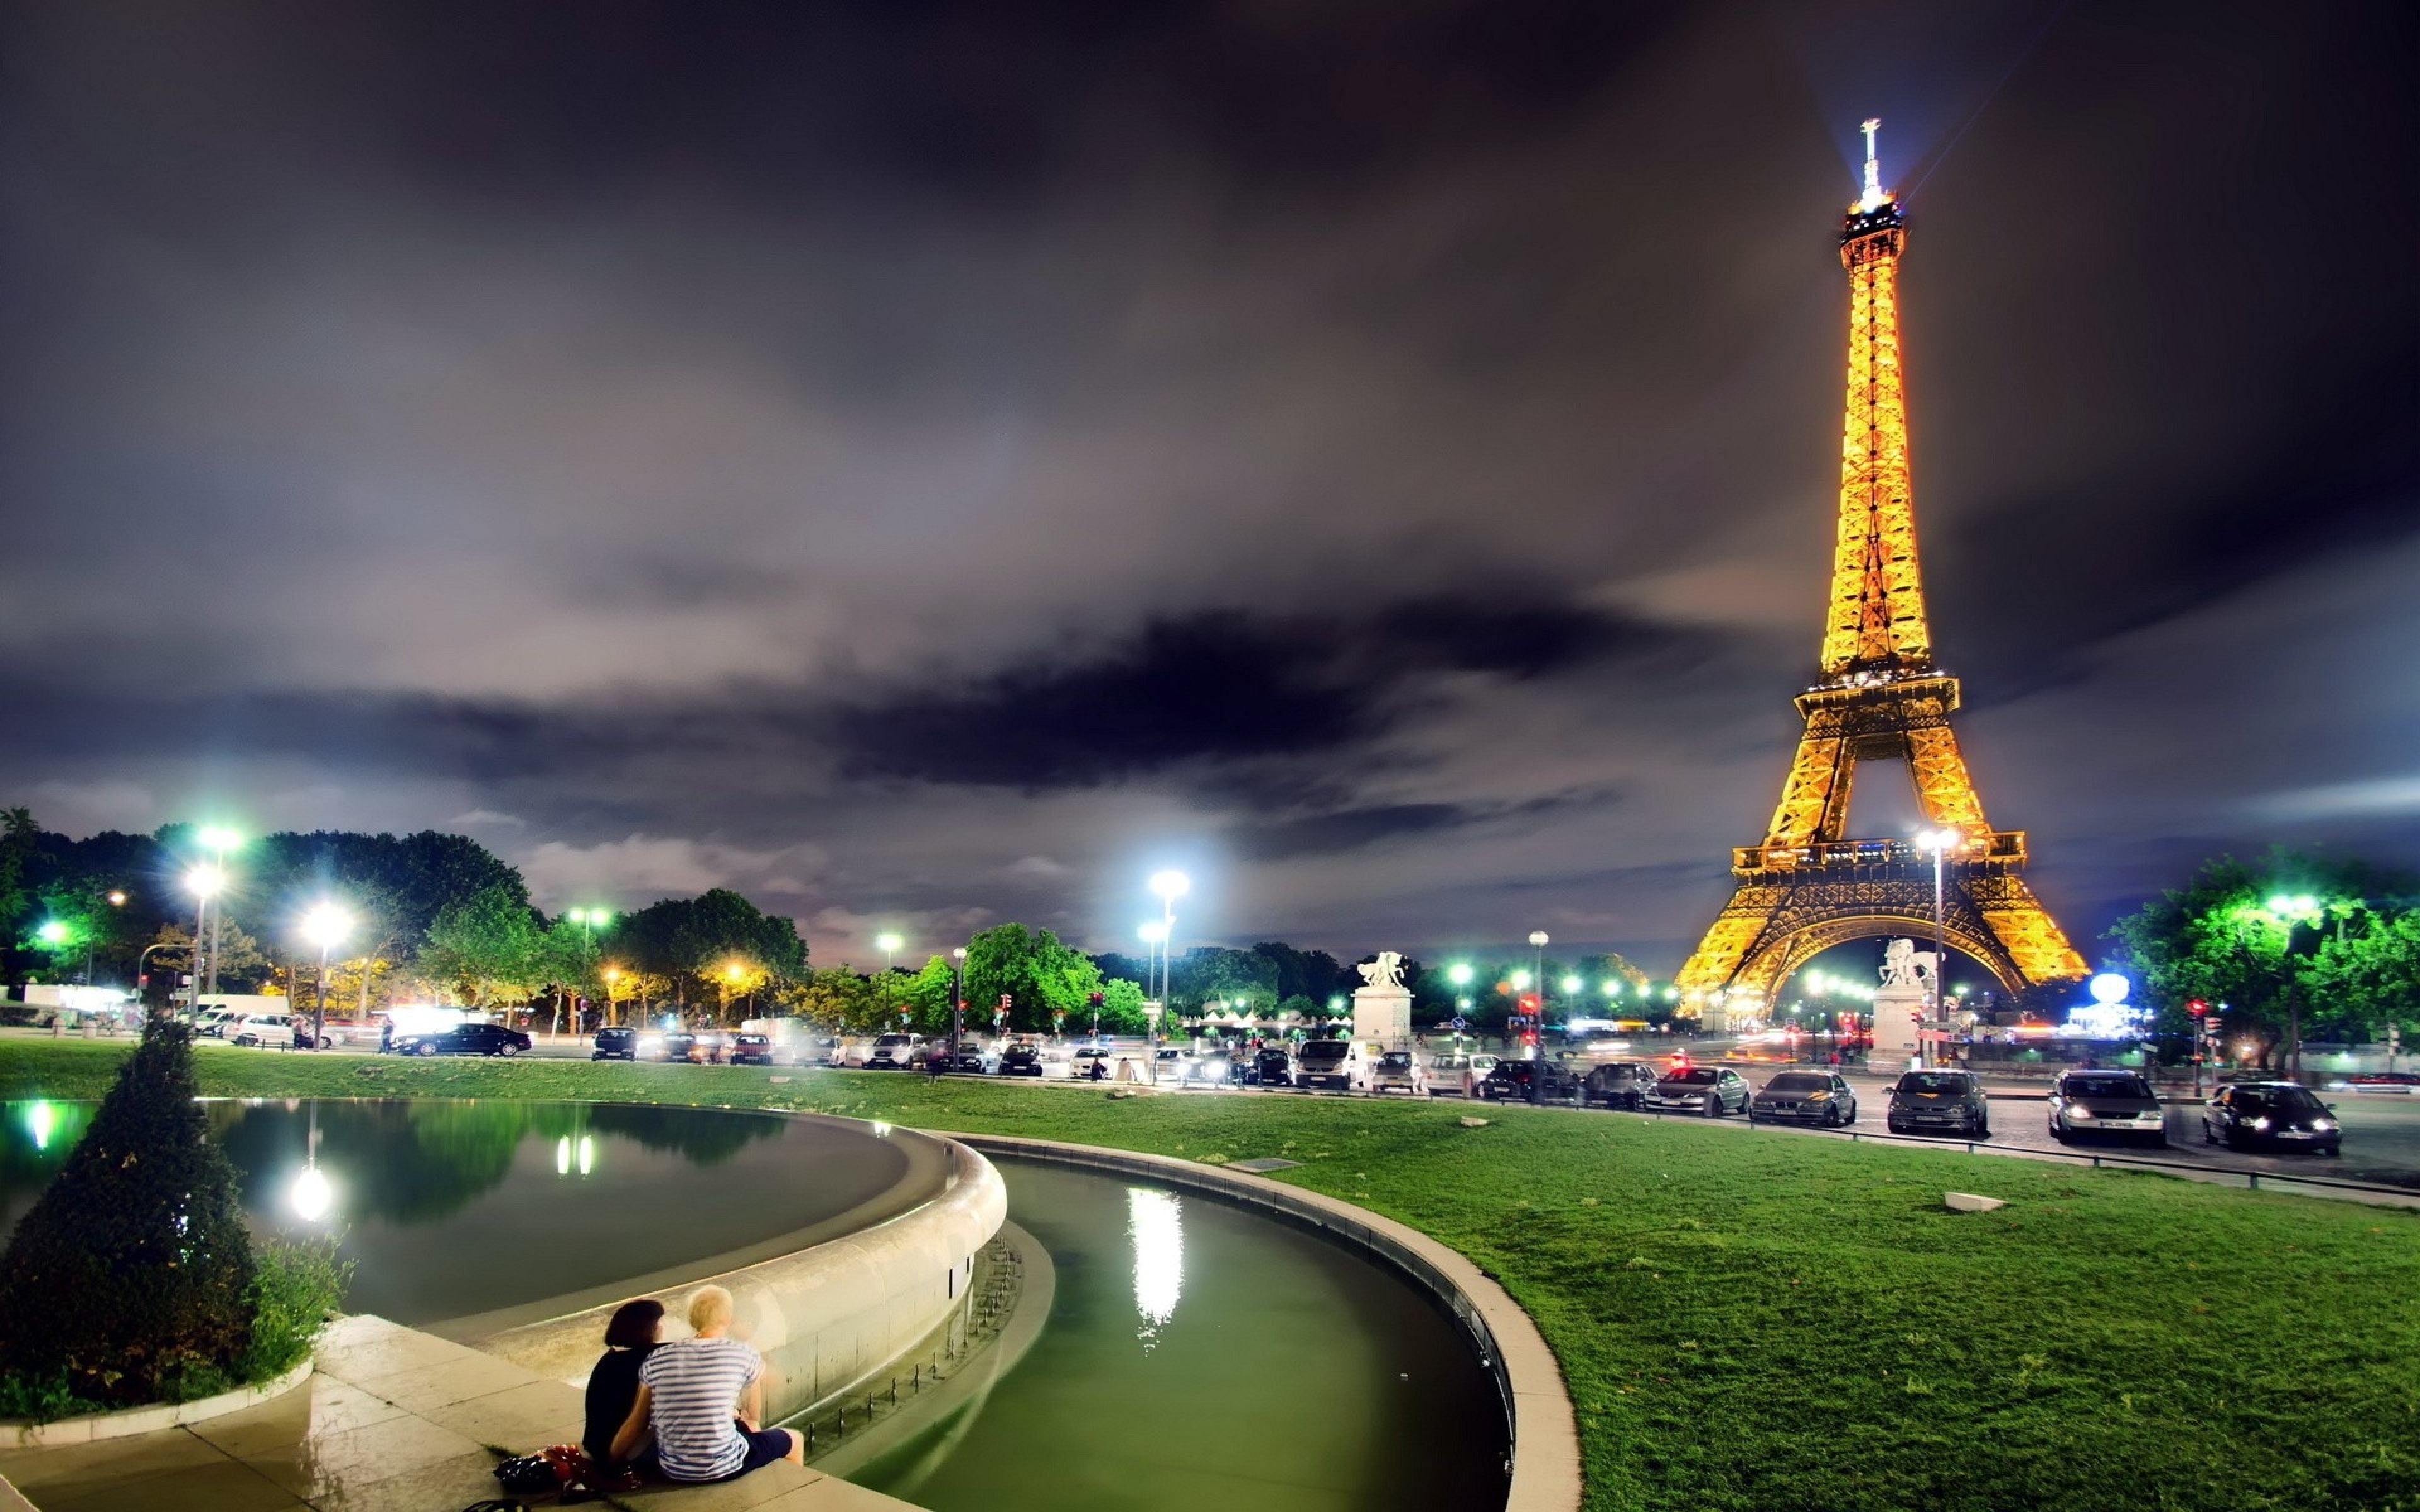 Eiffel Tower Full Hd Wallpaper 4k Eiffel Tower Wallpapers High Quality Download Free